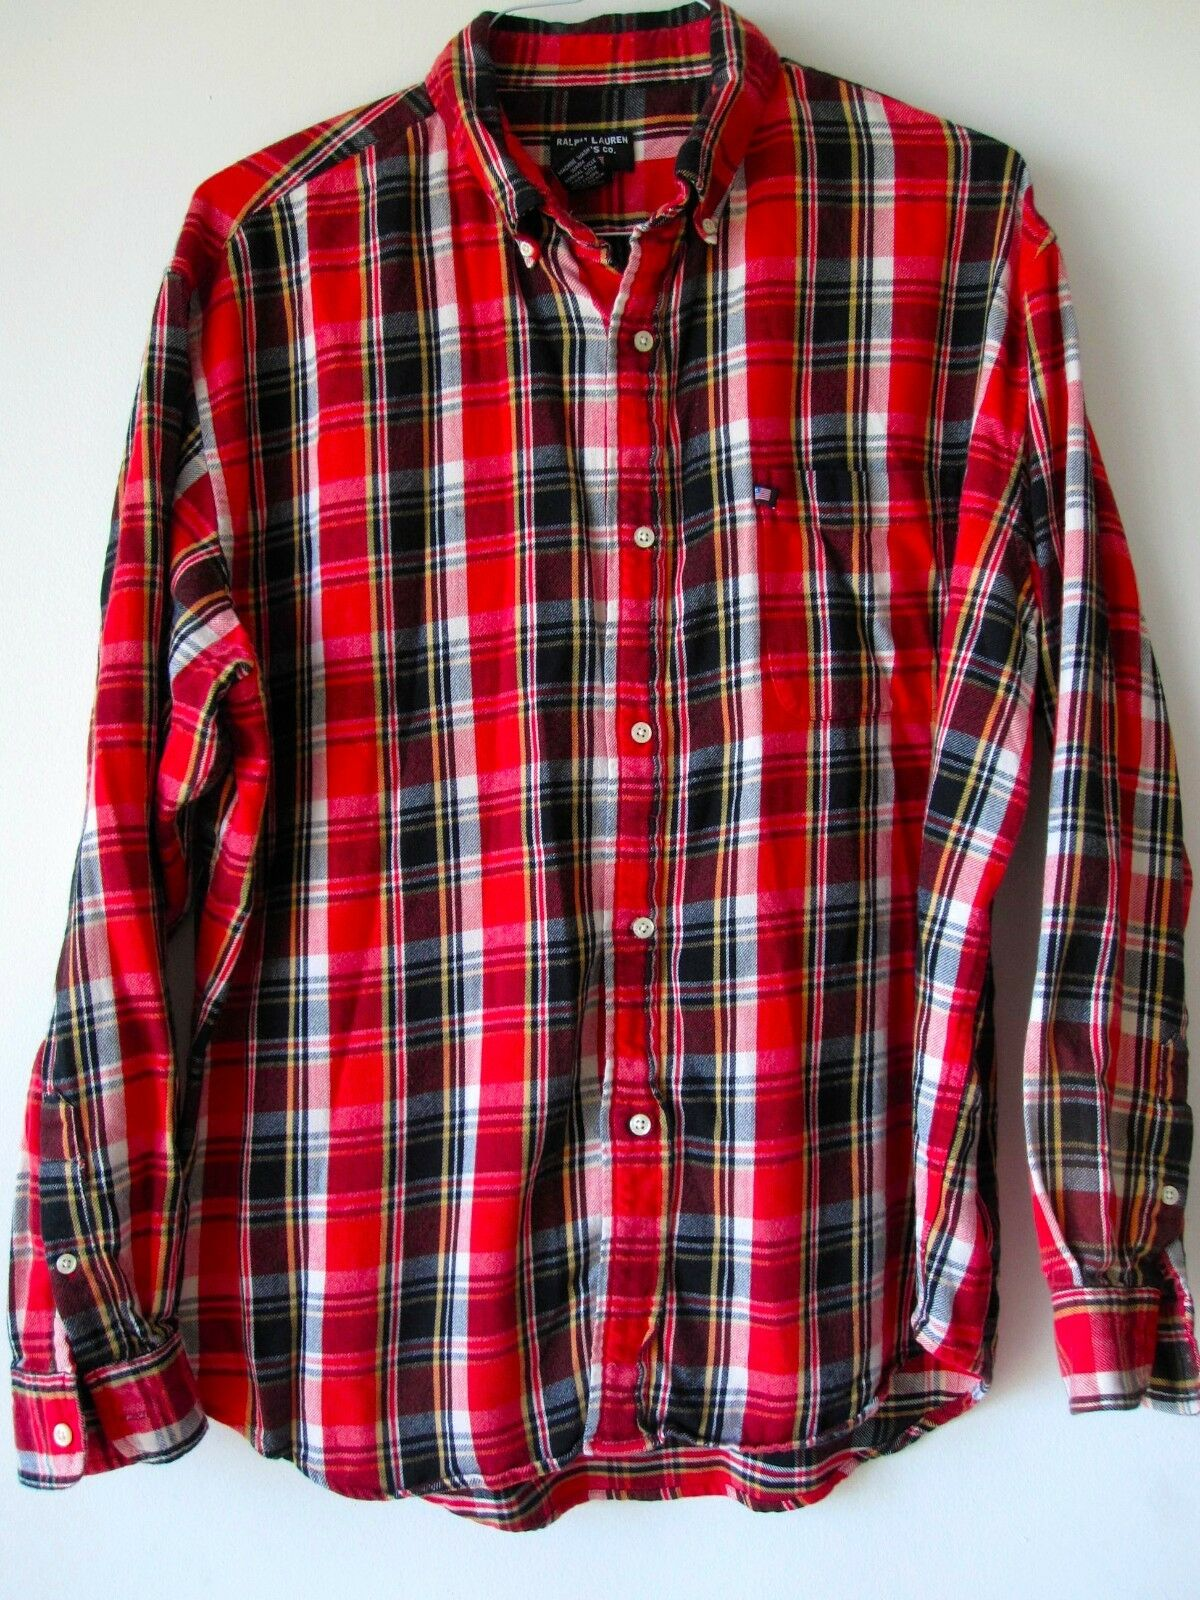 fdeacb59b Ralph Lauren Shirt Large Red Plaid Button Down Shirt Long Sleeves L Mens